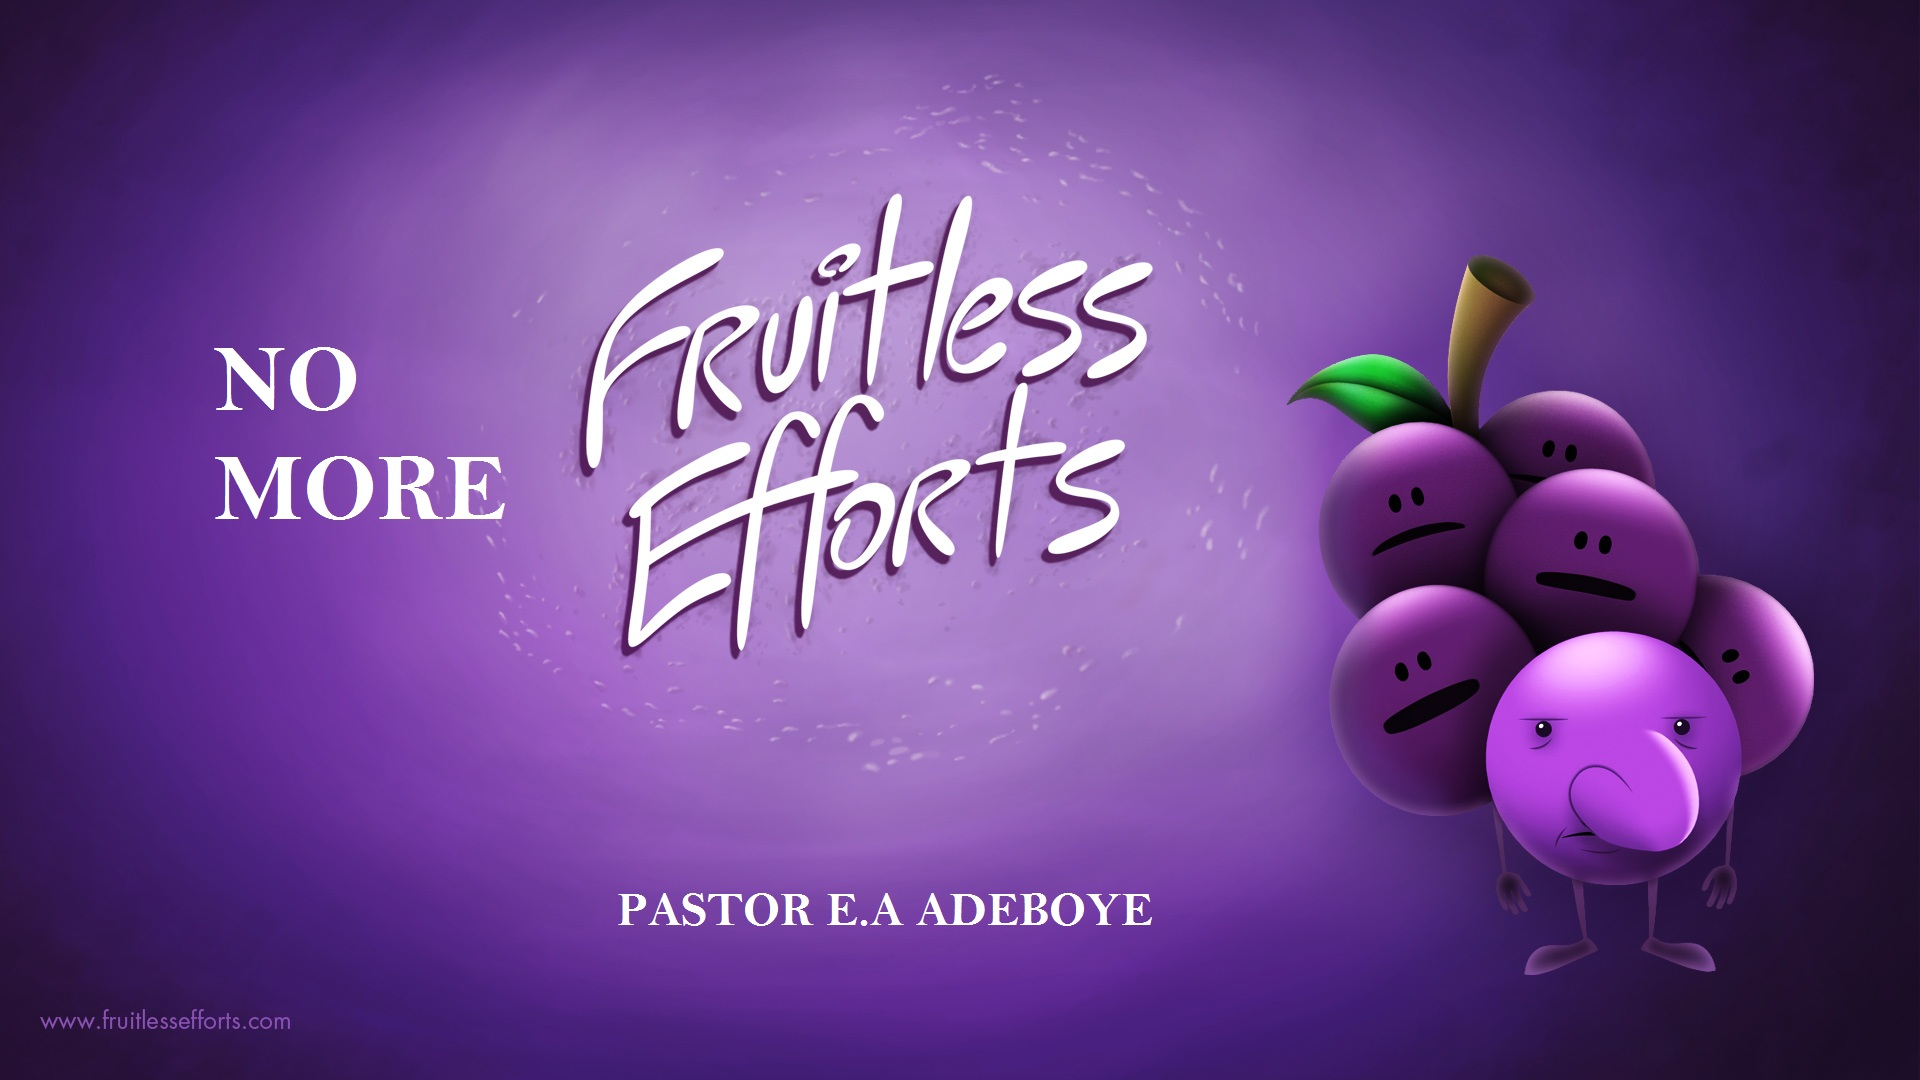 NO MORE Fruitless Efforts